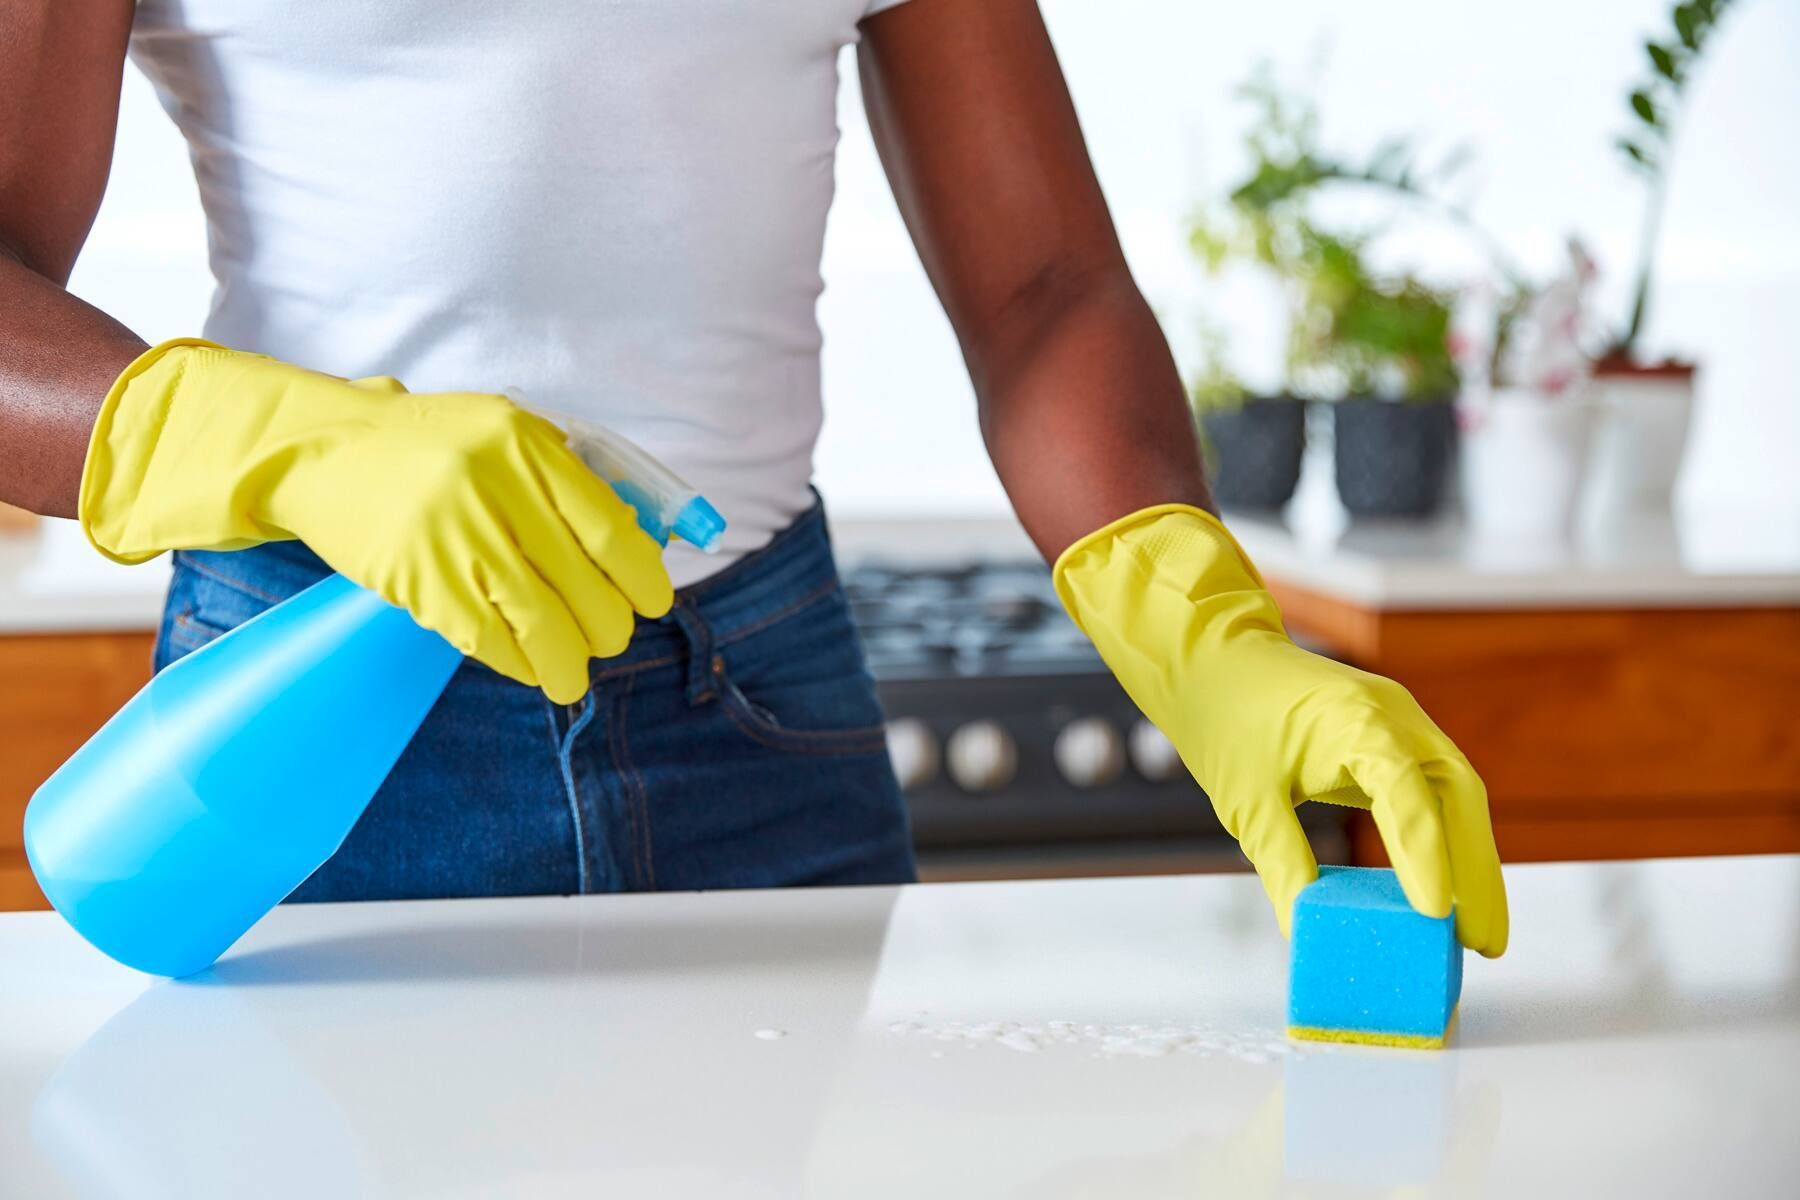 A close-up image of a female wearing yellow house gloves wiping a counter with a spray bottle